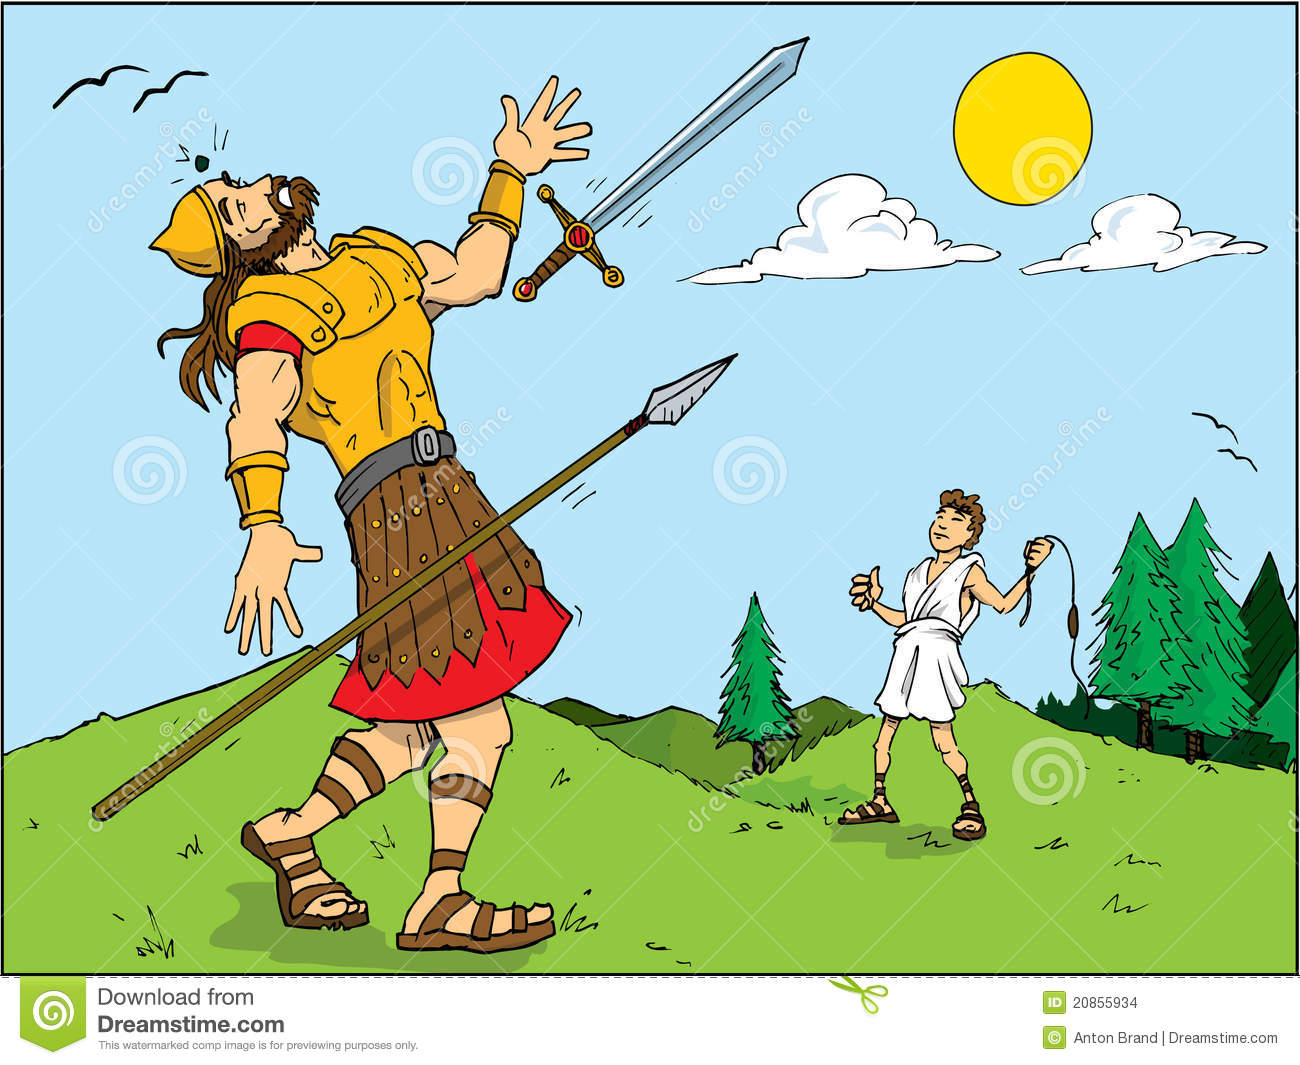 Cartoon Of Goliath Defeated By Stock Images - Image: 20855934